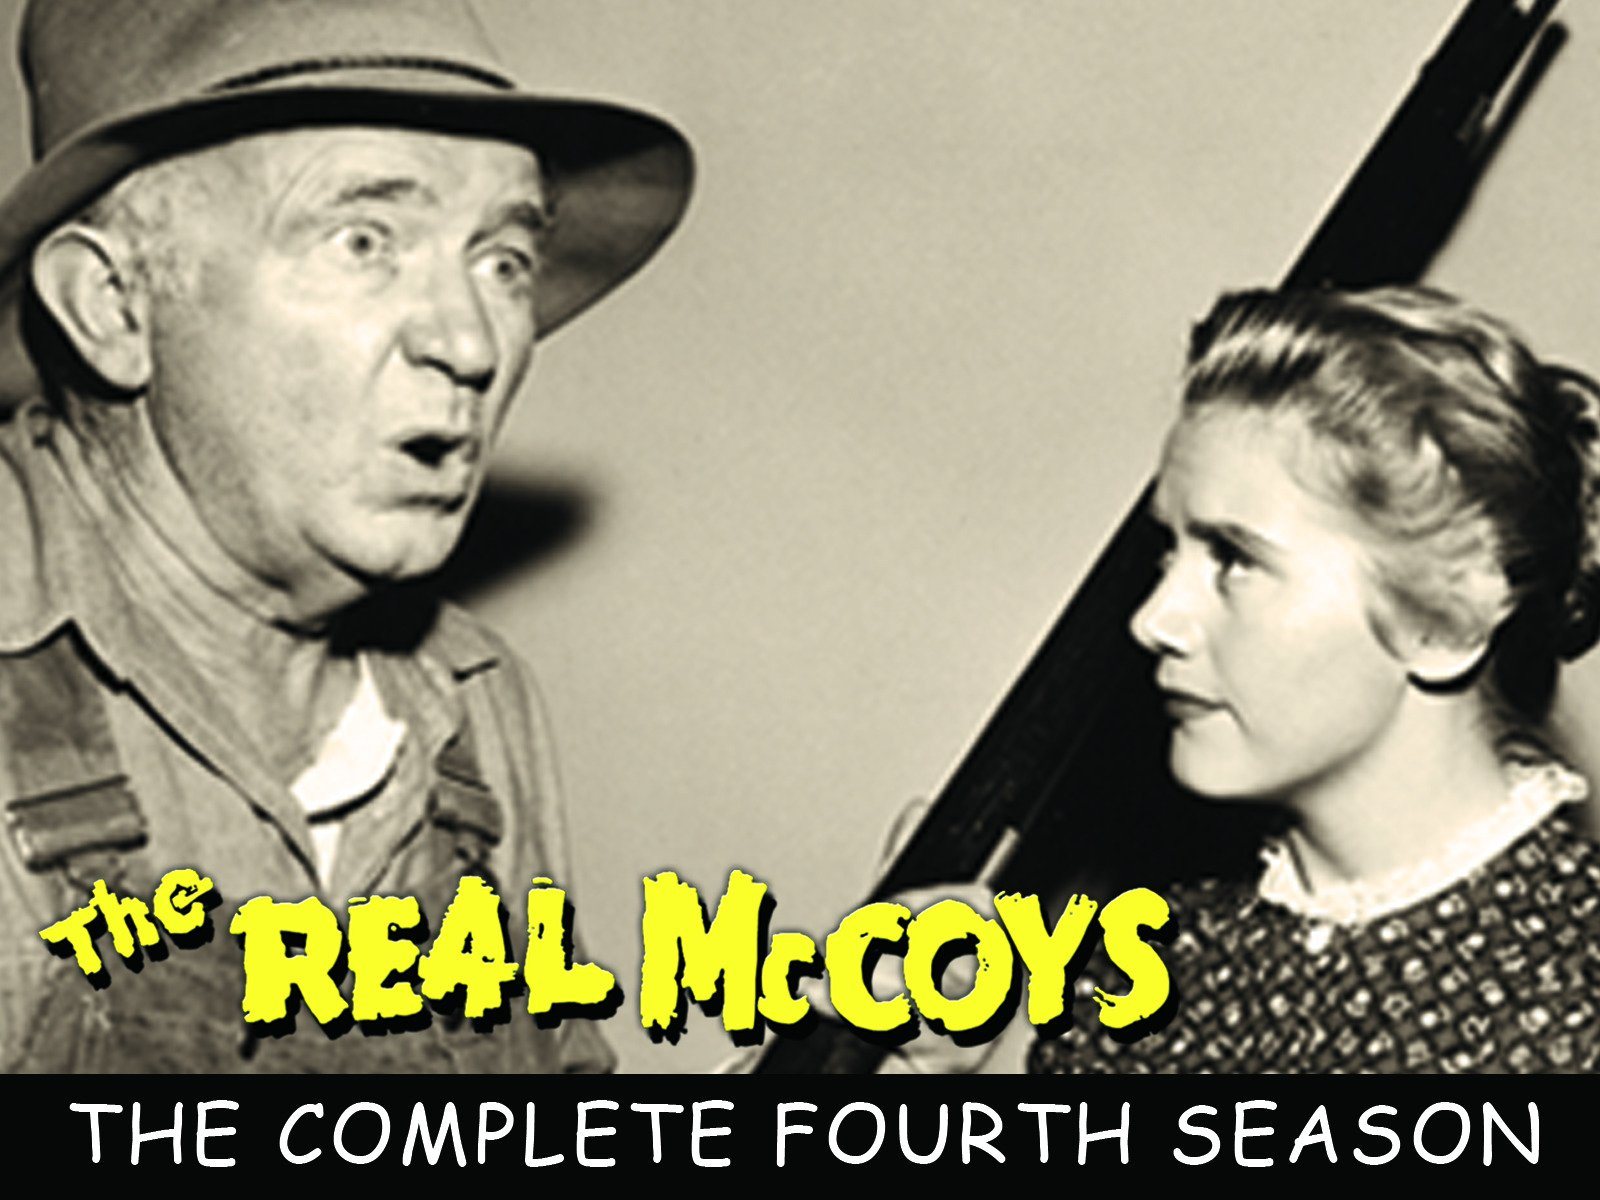 The Real McCoys - Season 4